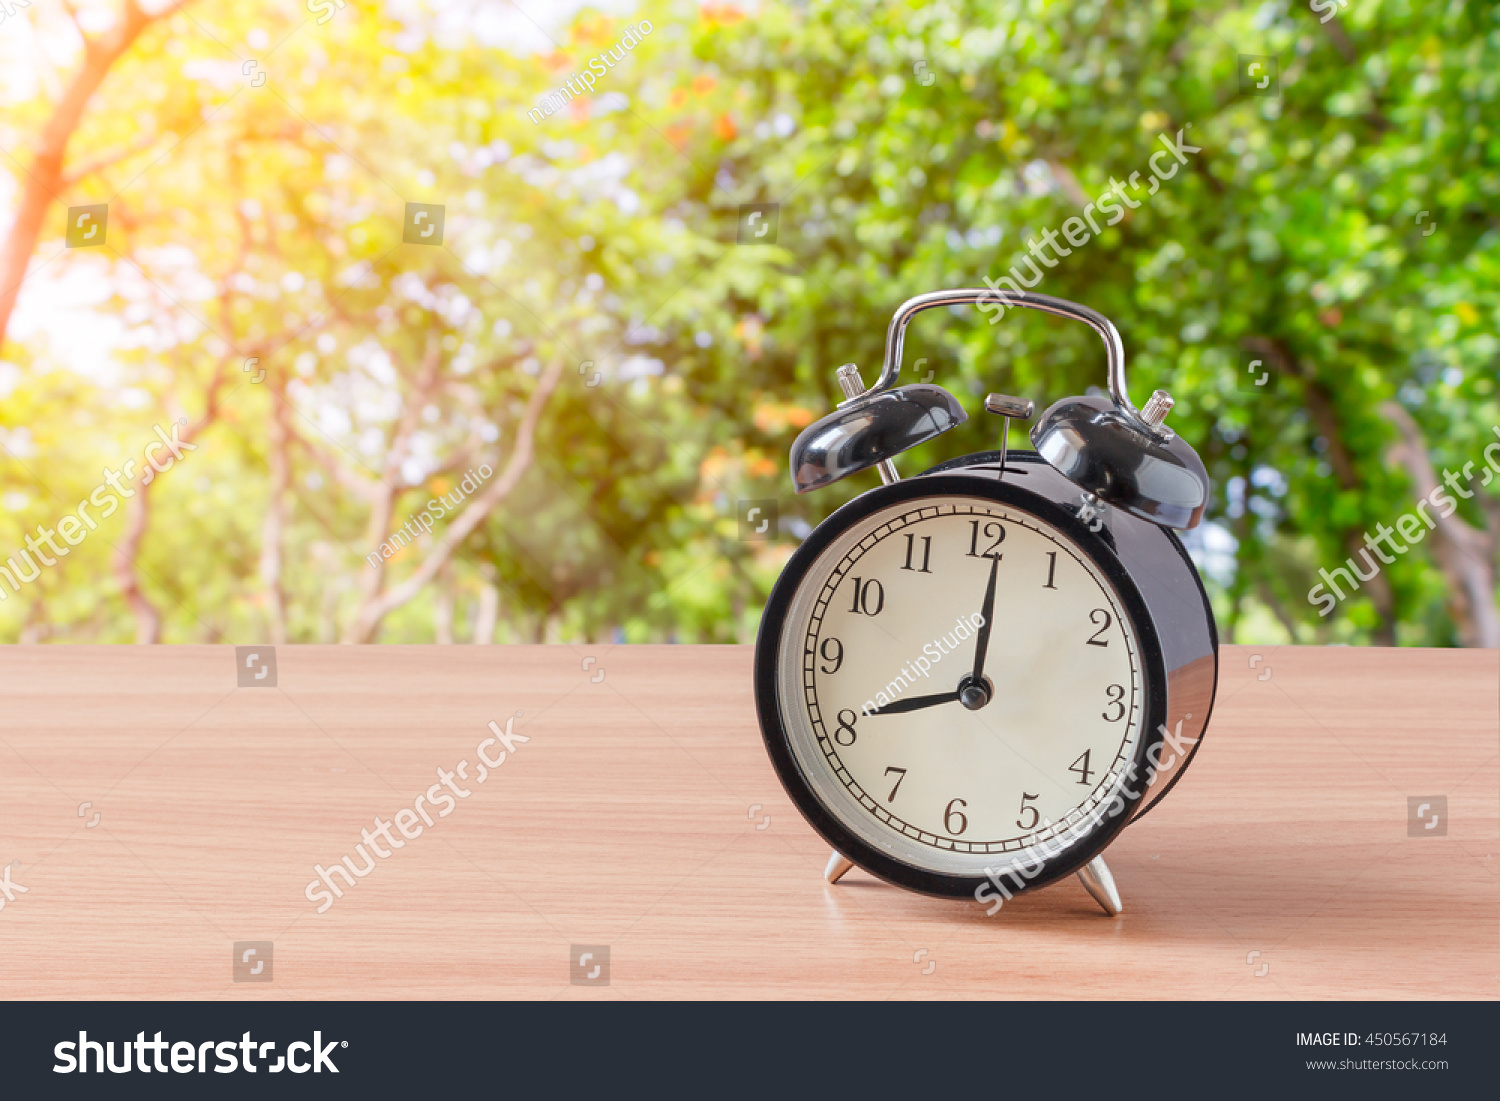 Clock And Alarm